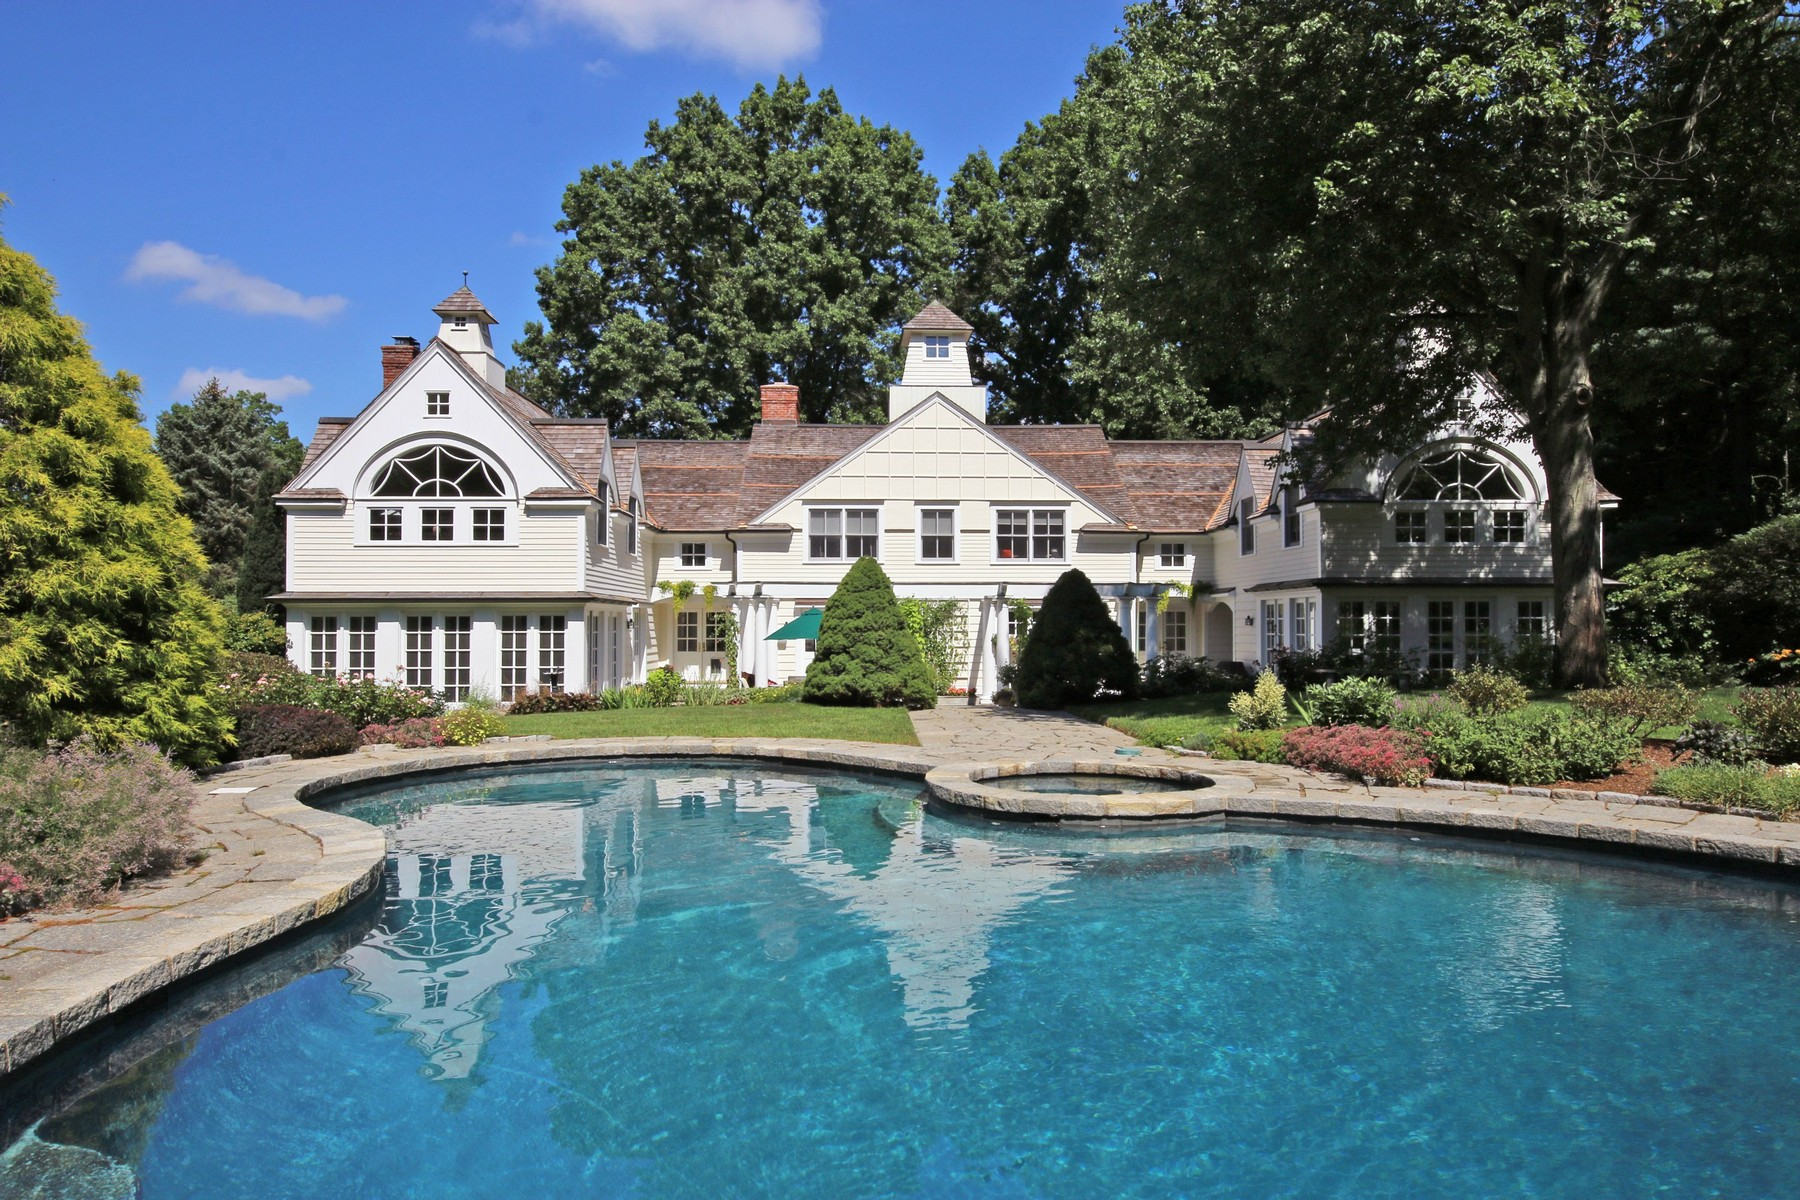 Maison unifamiliale pour l Vente à EXQUISITE COUNTRY ESTATE 445 Old Academy Road Fairfield, Connecticut, 06824 États-Unis